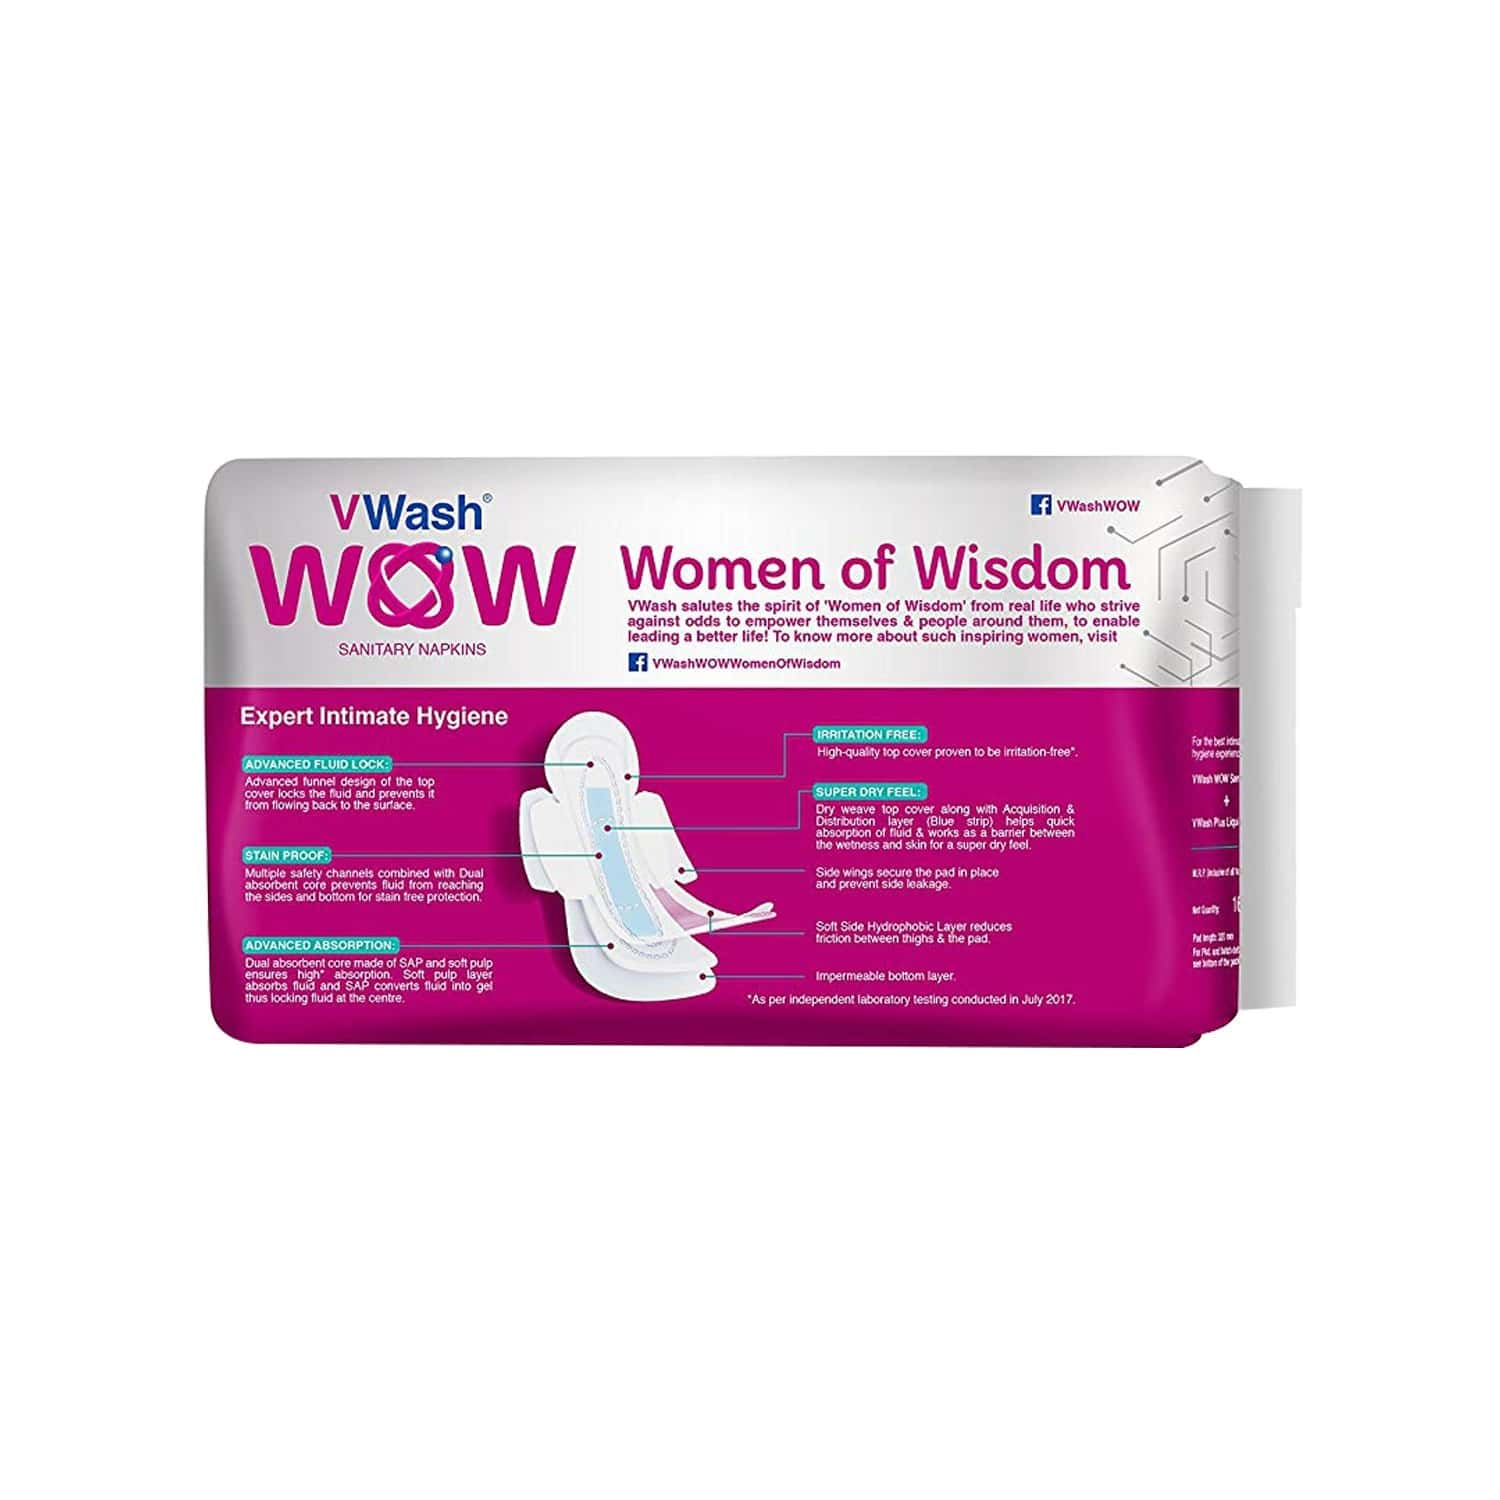 Vwash Wow Maxi Size Xl Sanitary Pads Pack Of 16